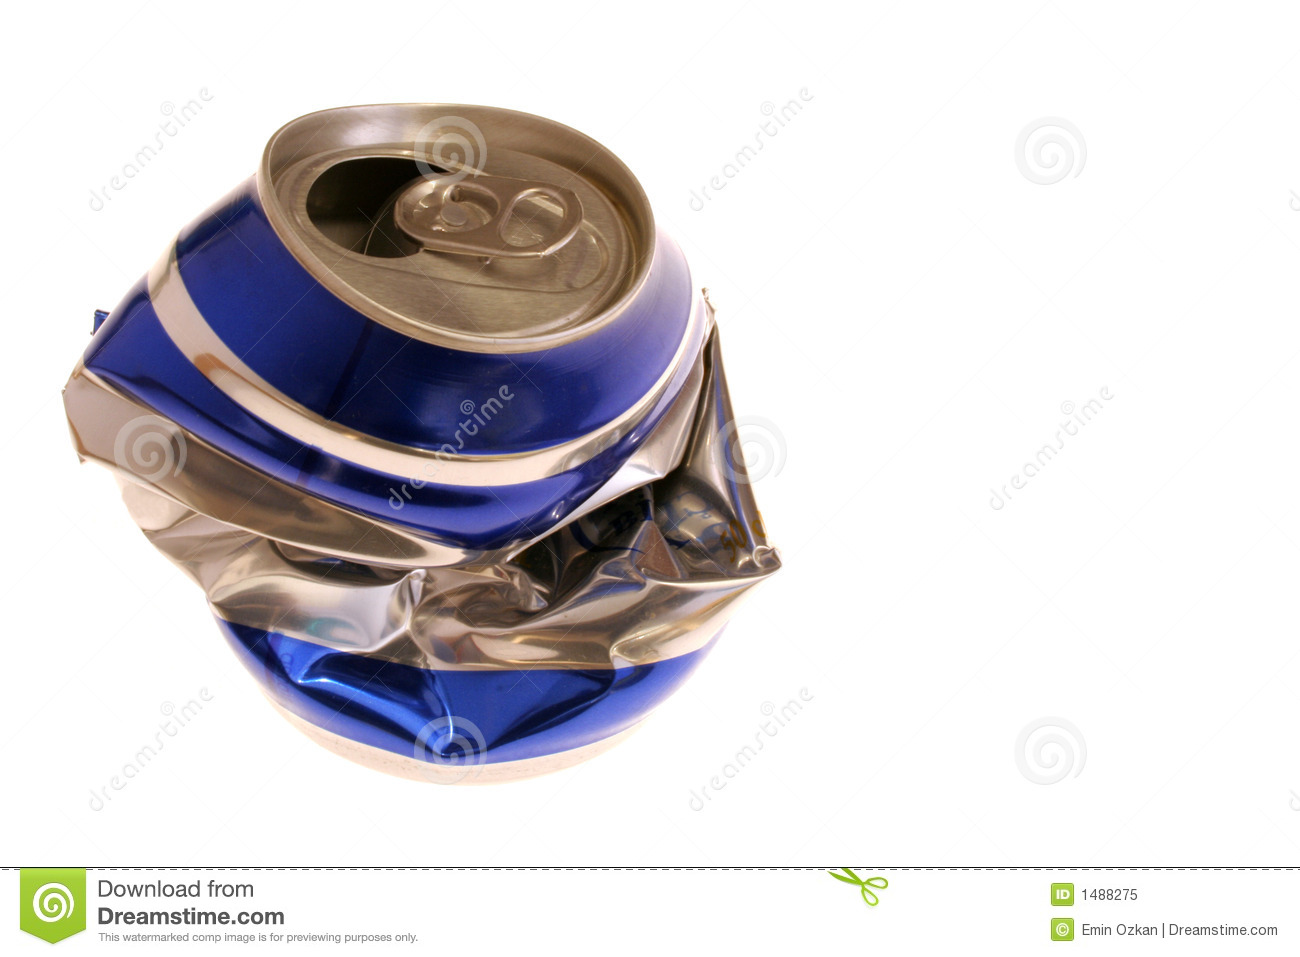 Crushed beer can stock image. Image of recyclable, crushed ...  Crushed Beer Can